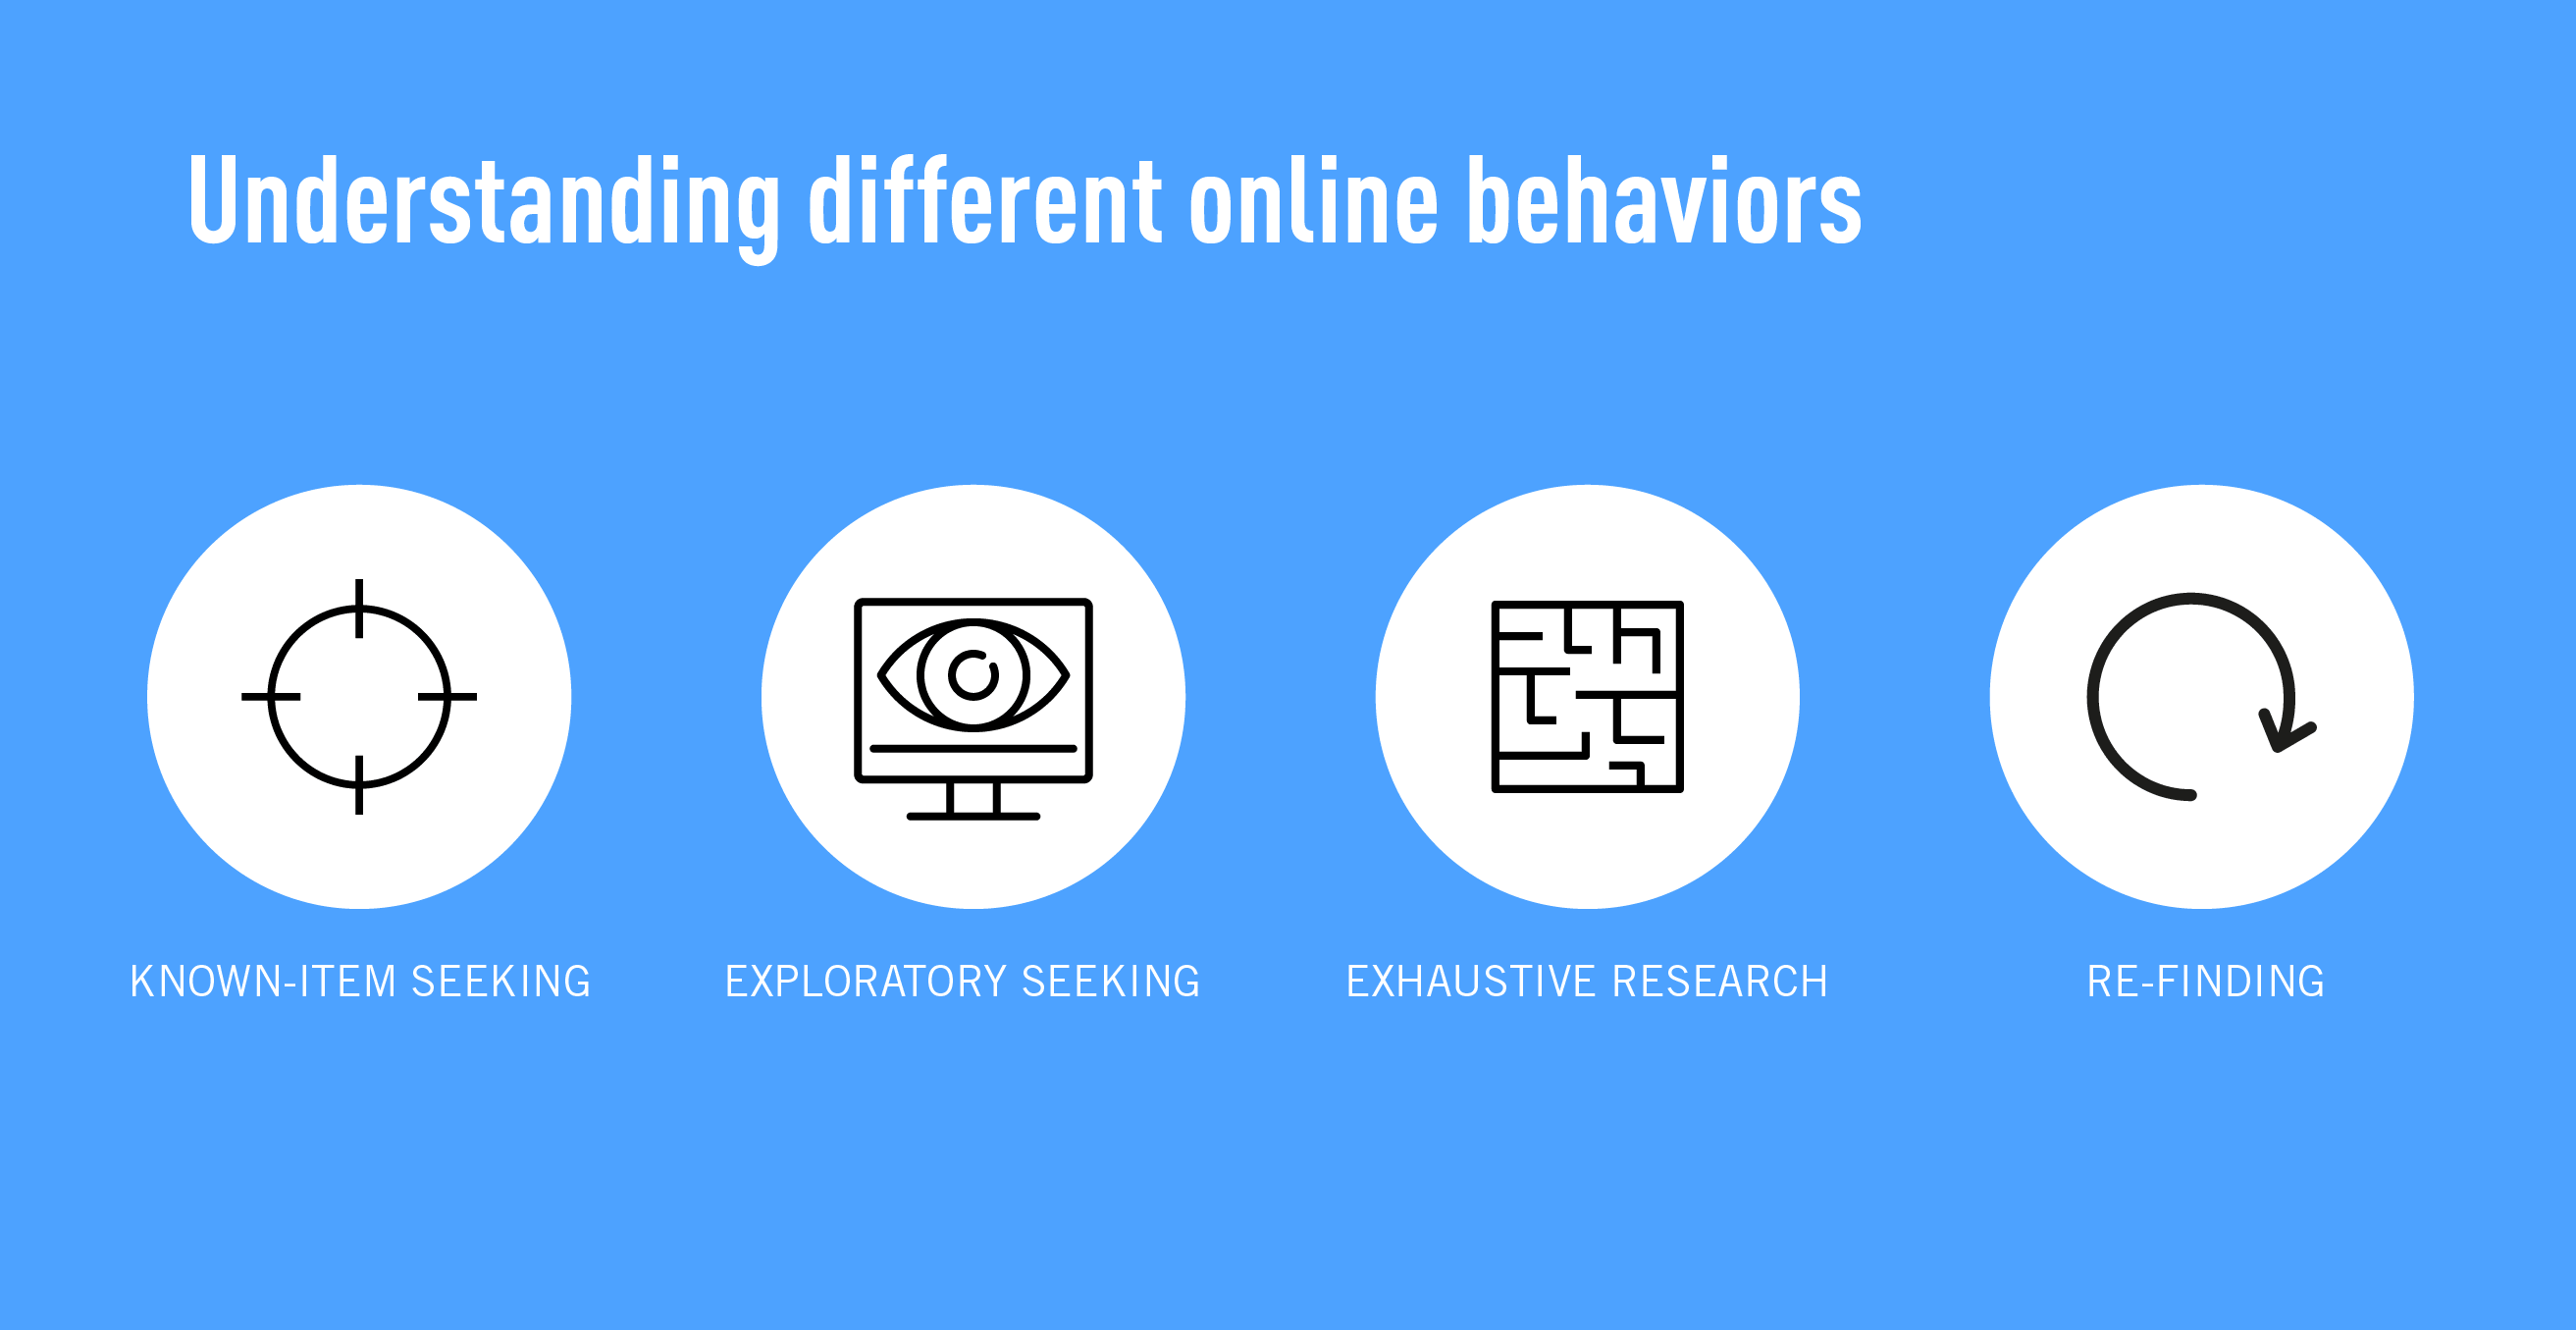 How to understand different online behaviors through information architecture